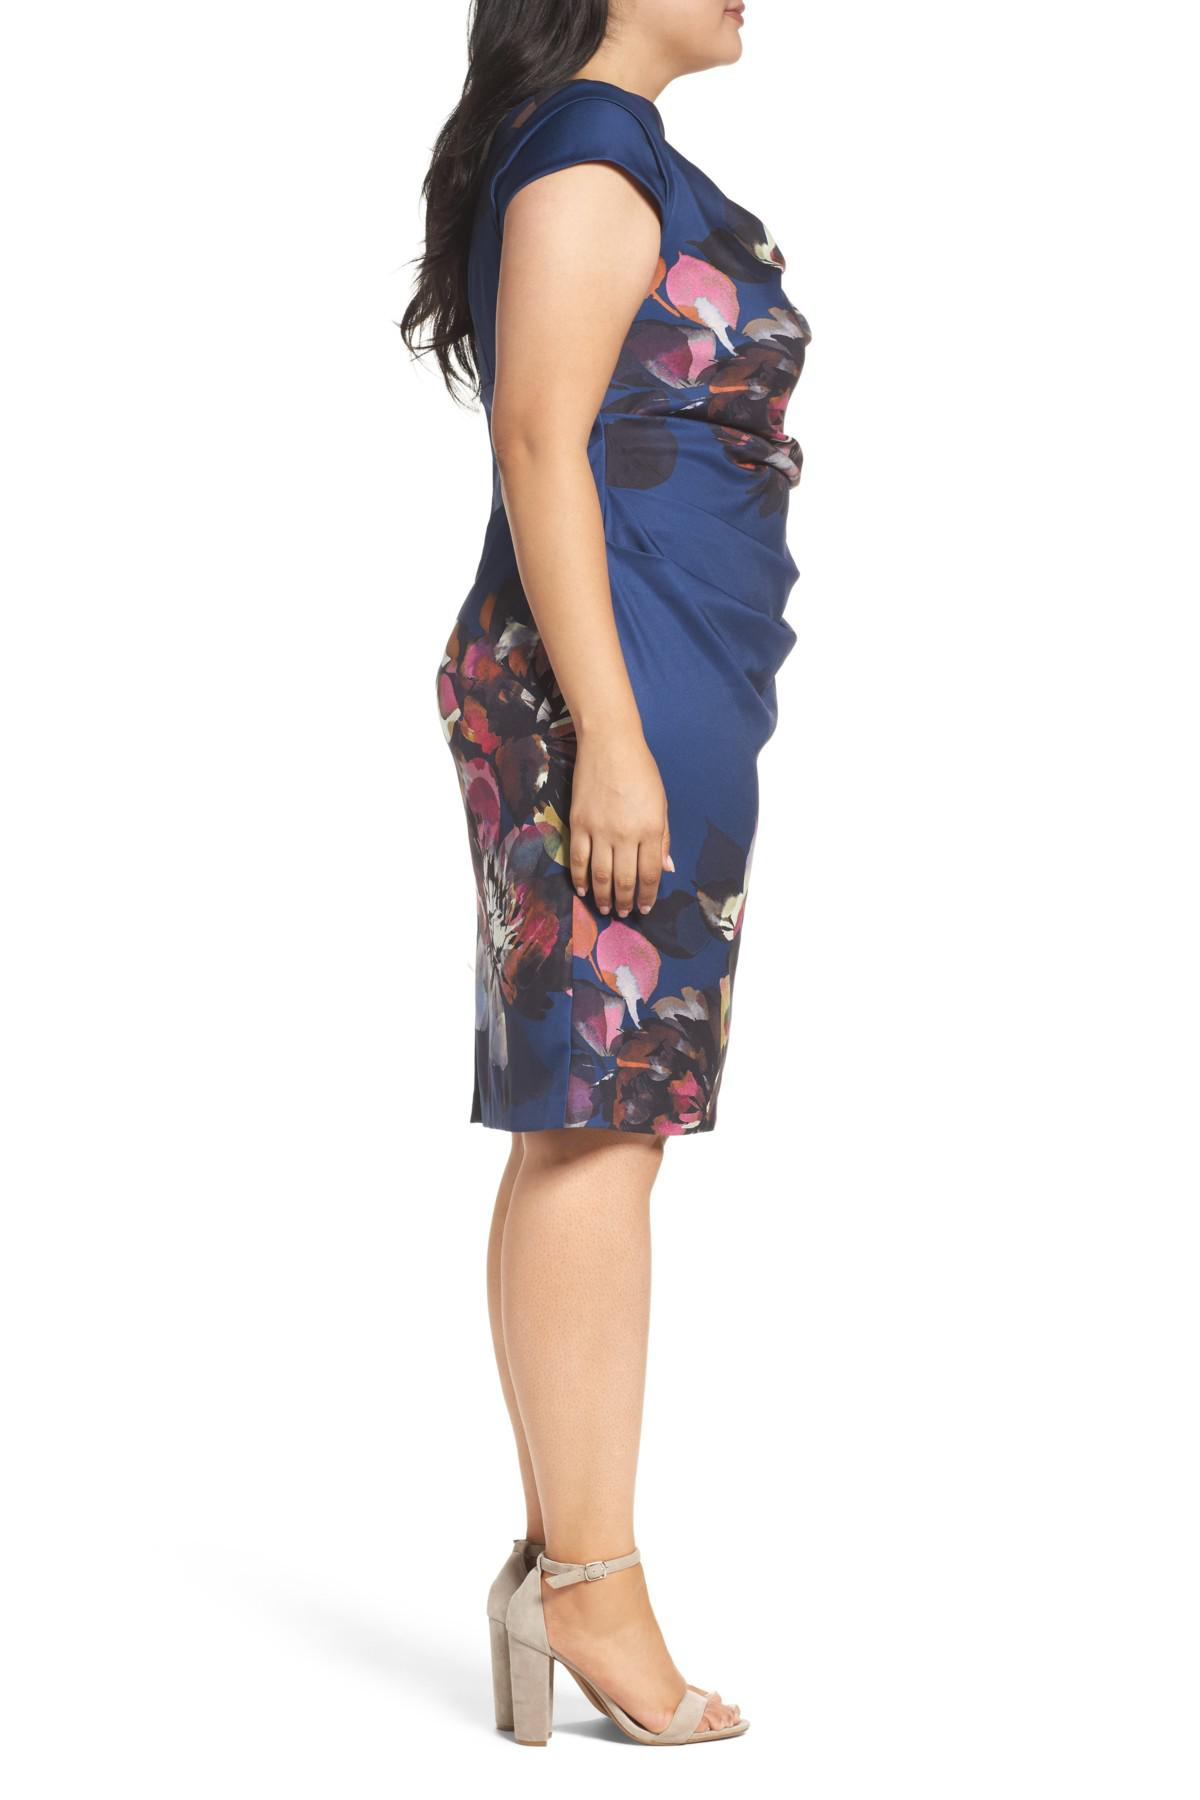 fcc4e397 Gallery. Previously sold at: Nordstrom, Nordstrom Rack · Women's Adrianna  Papell Sheath Dress